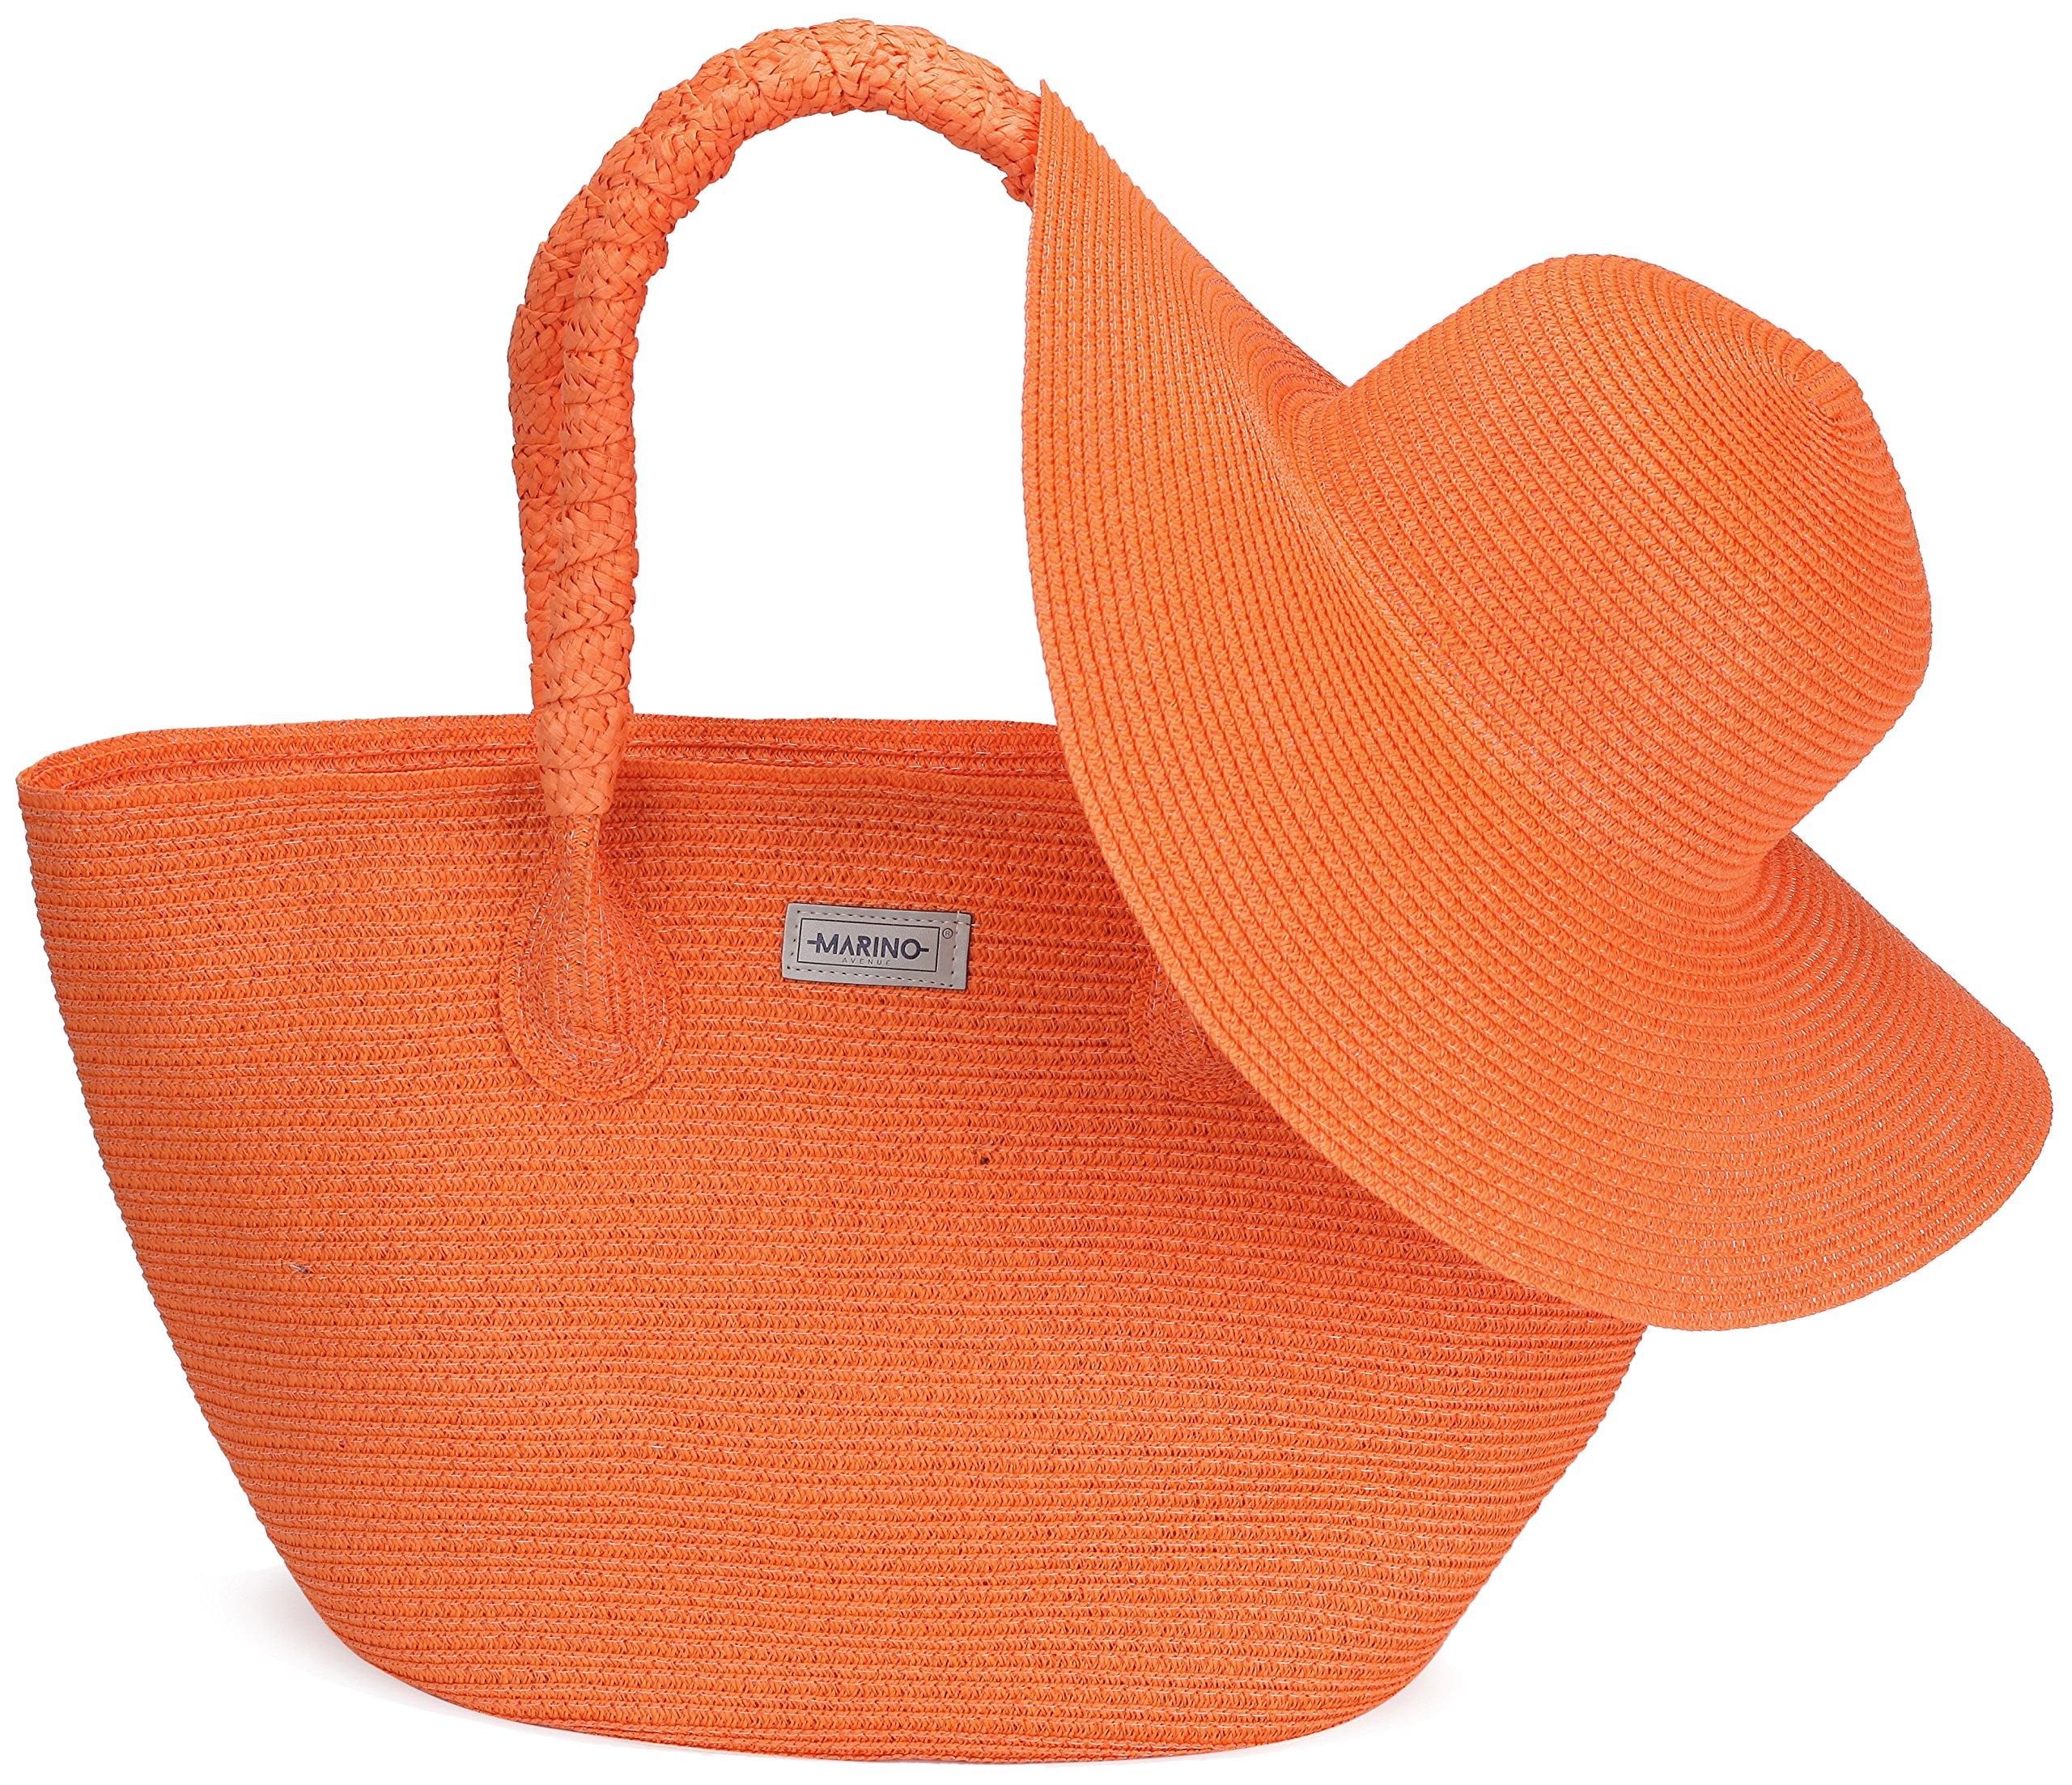 Marino Best Beach Tote Bag and Suns Hat for Women - Floppy Straw Hat and Swimming Bag - Sun Protection Hat UPF 50+ - Orange - One Size